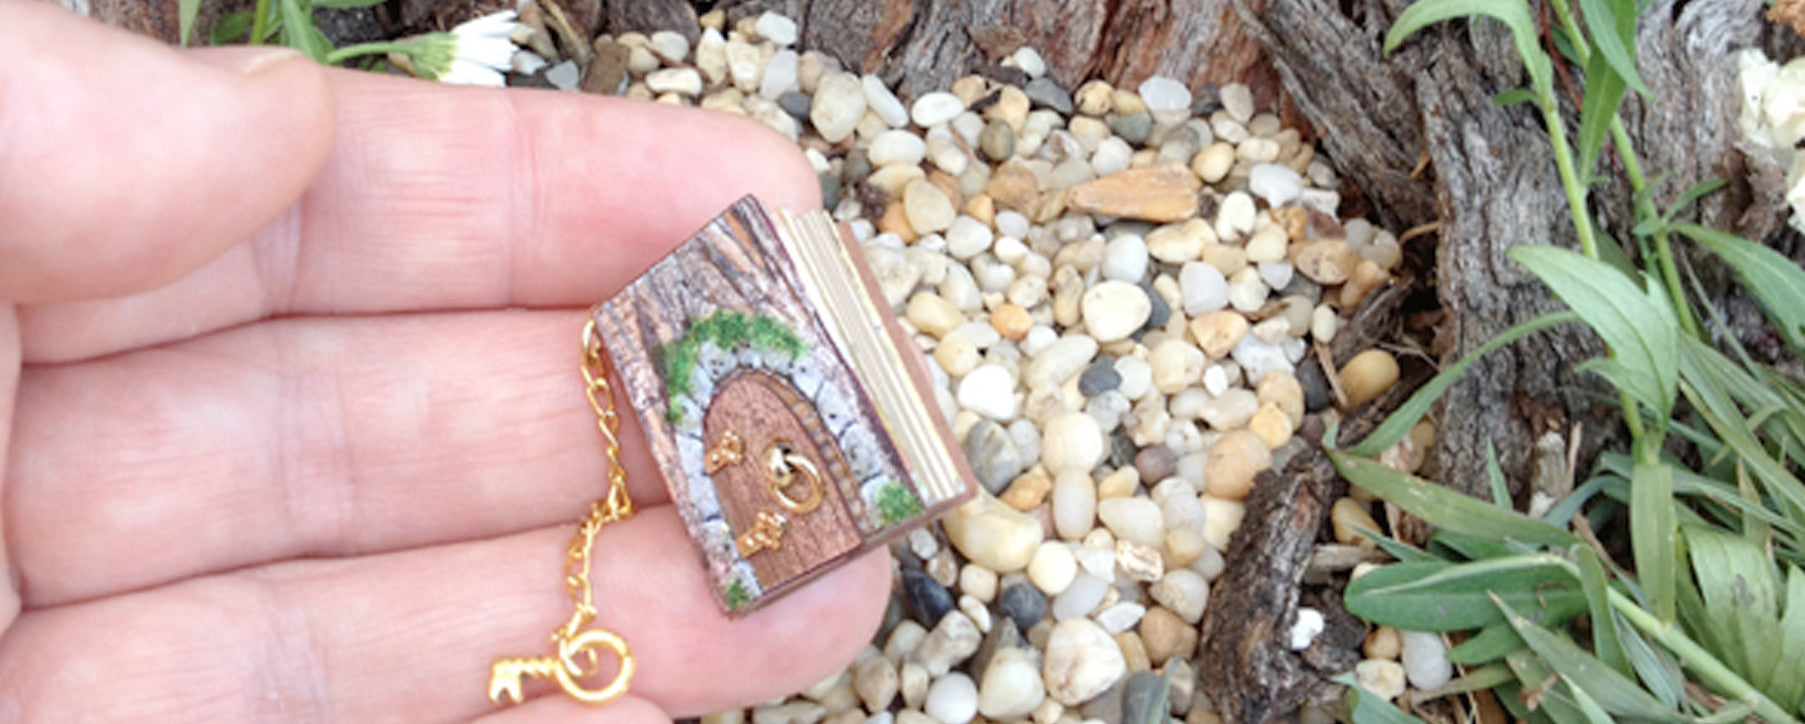 Fairy Door 1:12 scale miniature book by Michelles Miniatures